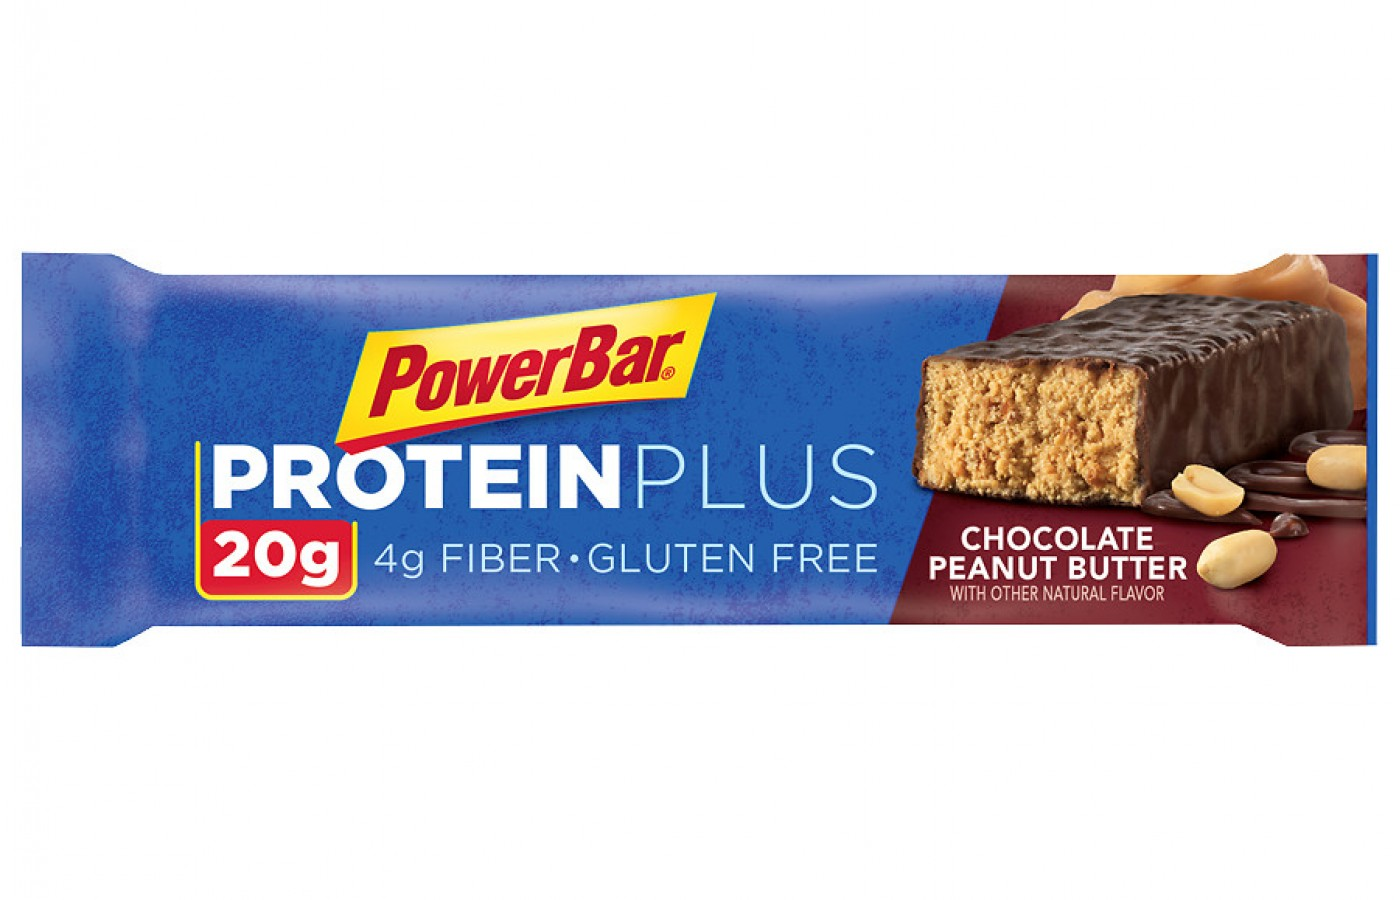 Chocolate peanut butter is a favorite flavor of the PowerBar Protein Plus.